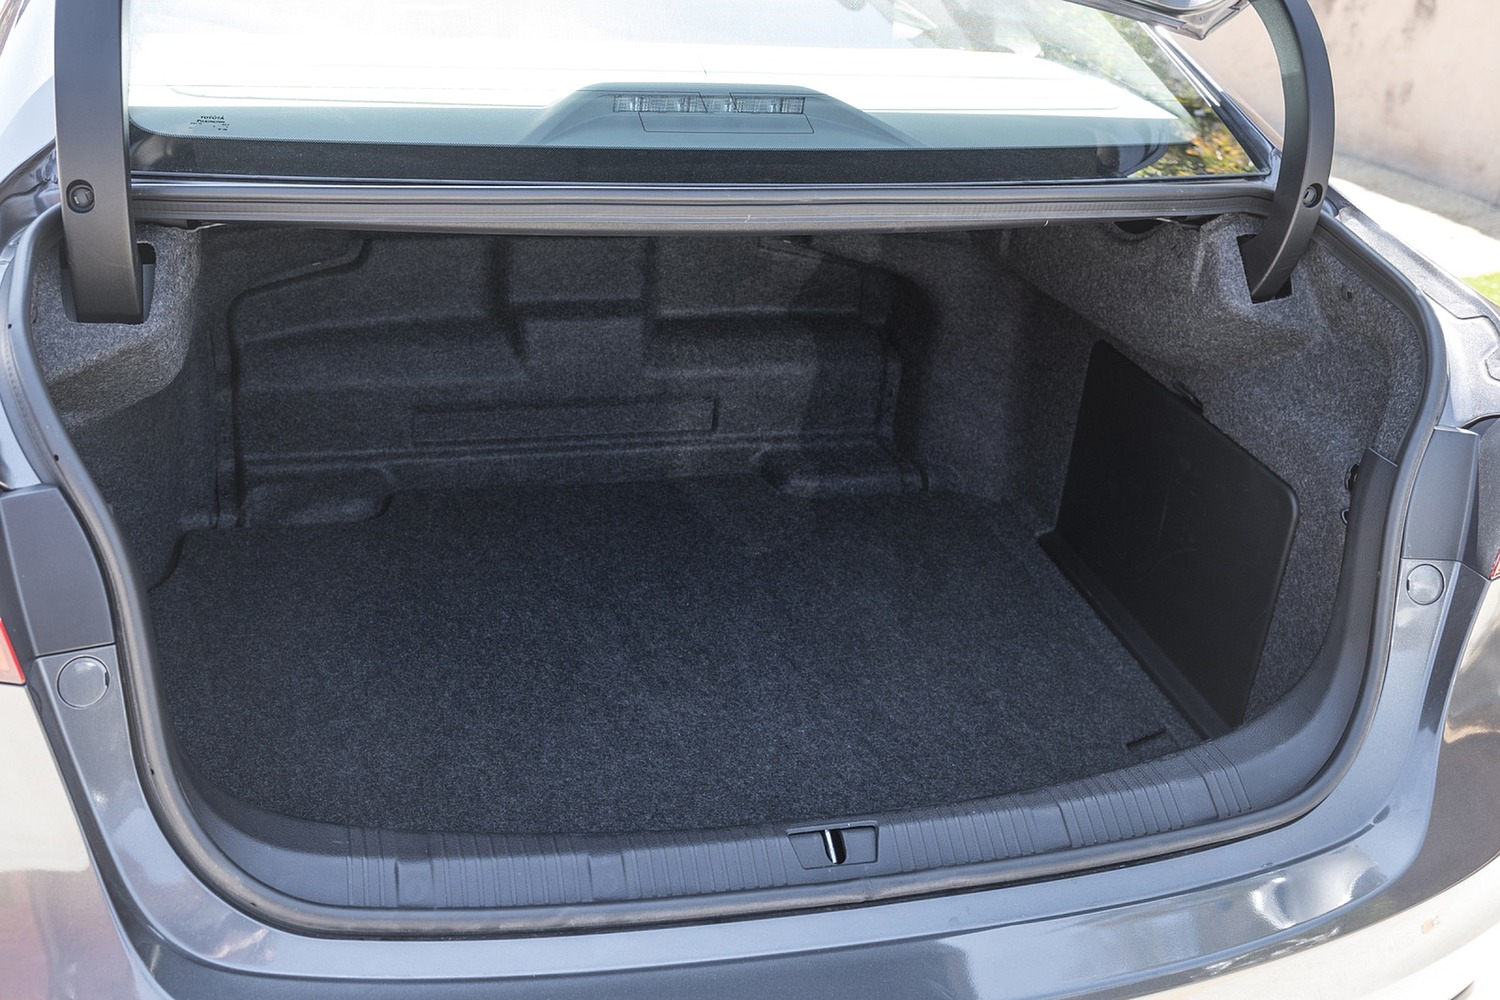 Toyota Avalon Hybrid Sedan Cargo Area (2017 model year shown)